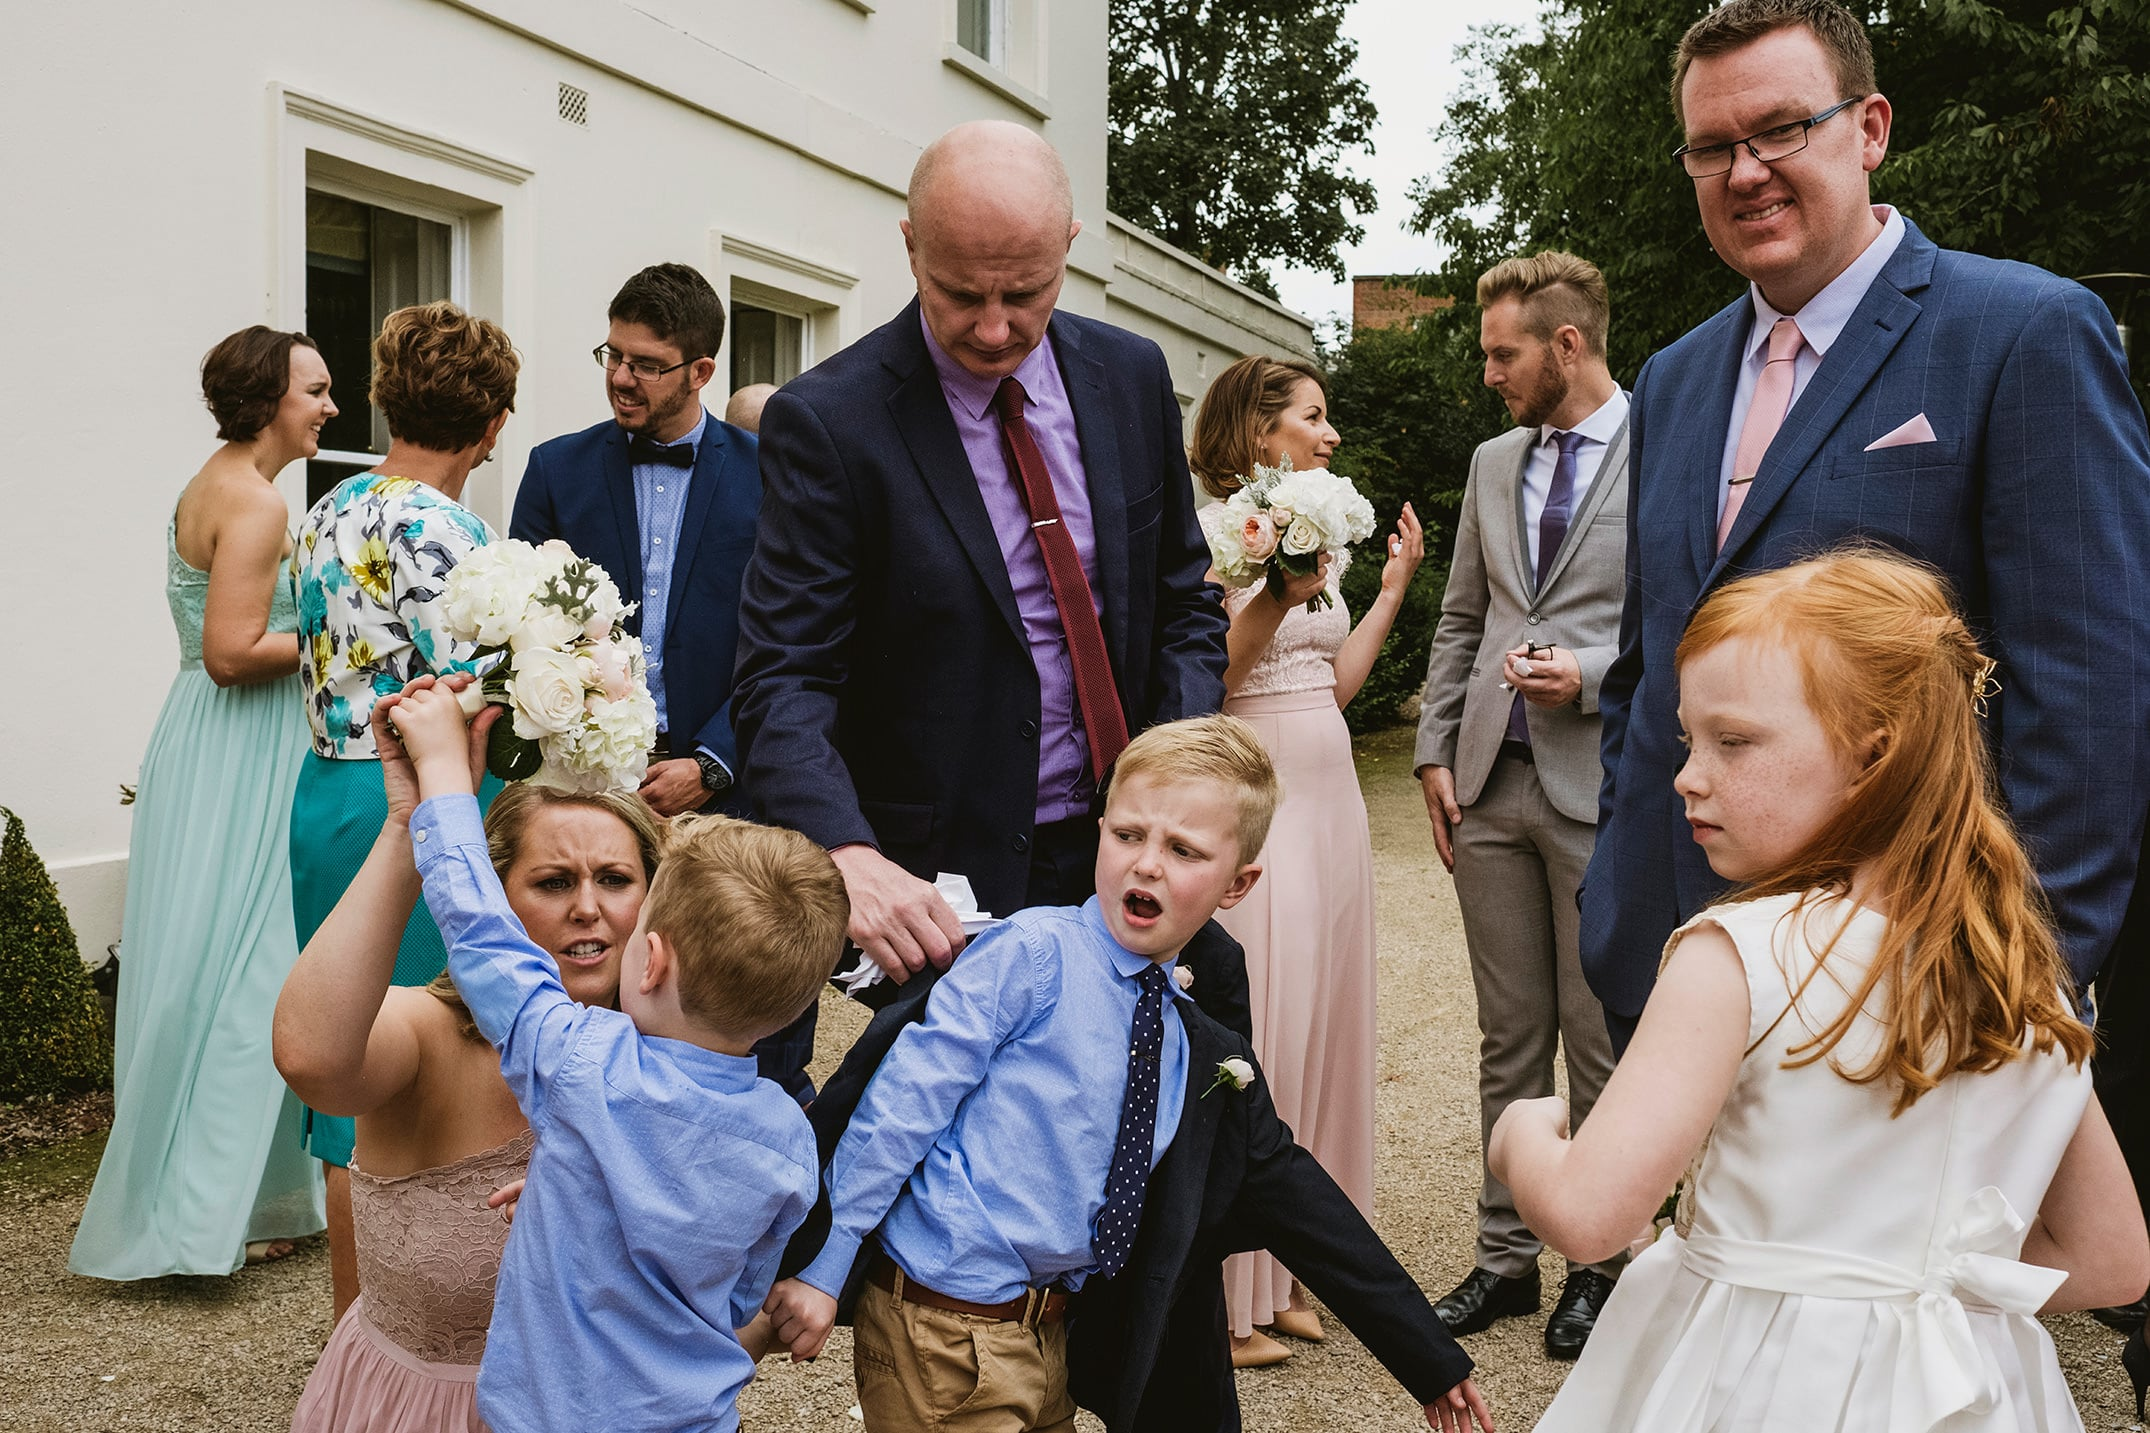 wedding reception chaos at Morden Hall in London. Children unimpressed.